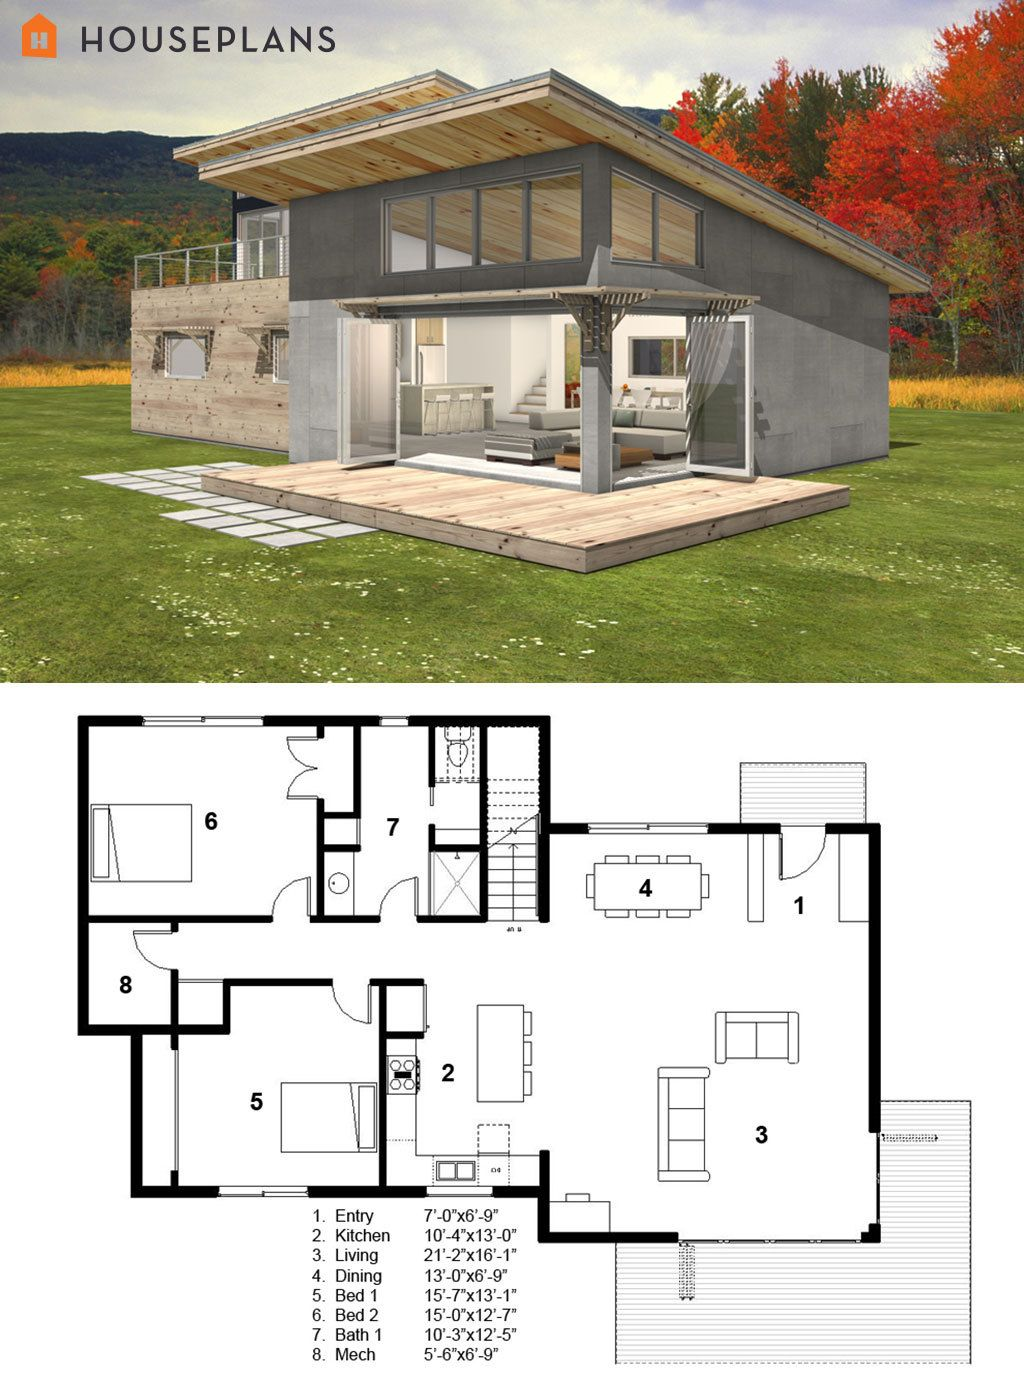 Small modern cabin house plan by freegreen energy for Simple modern home plans